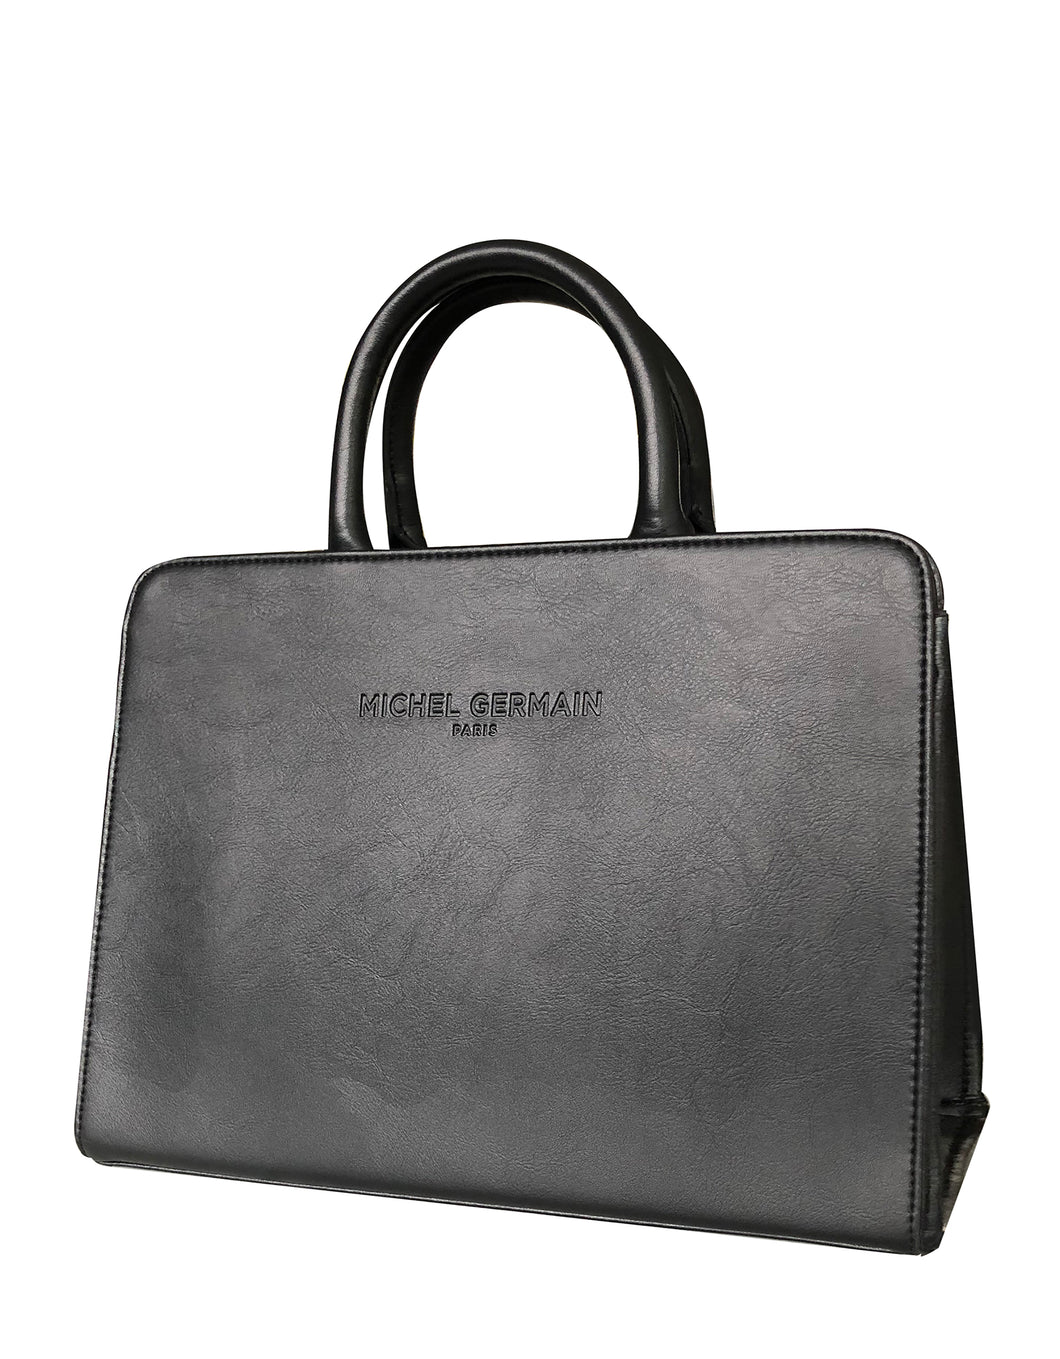 Michel Germain Designer Handbag